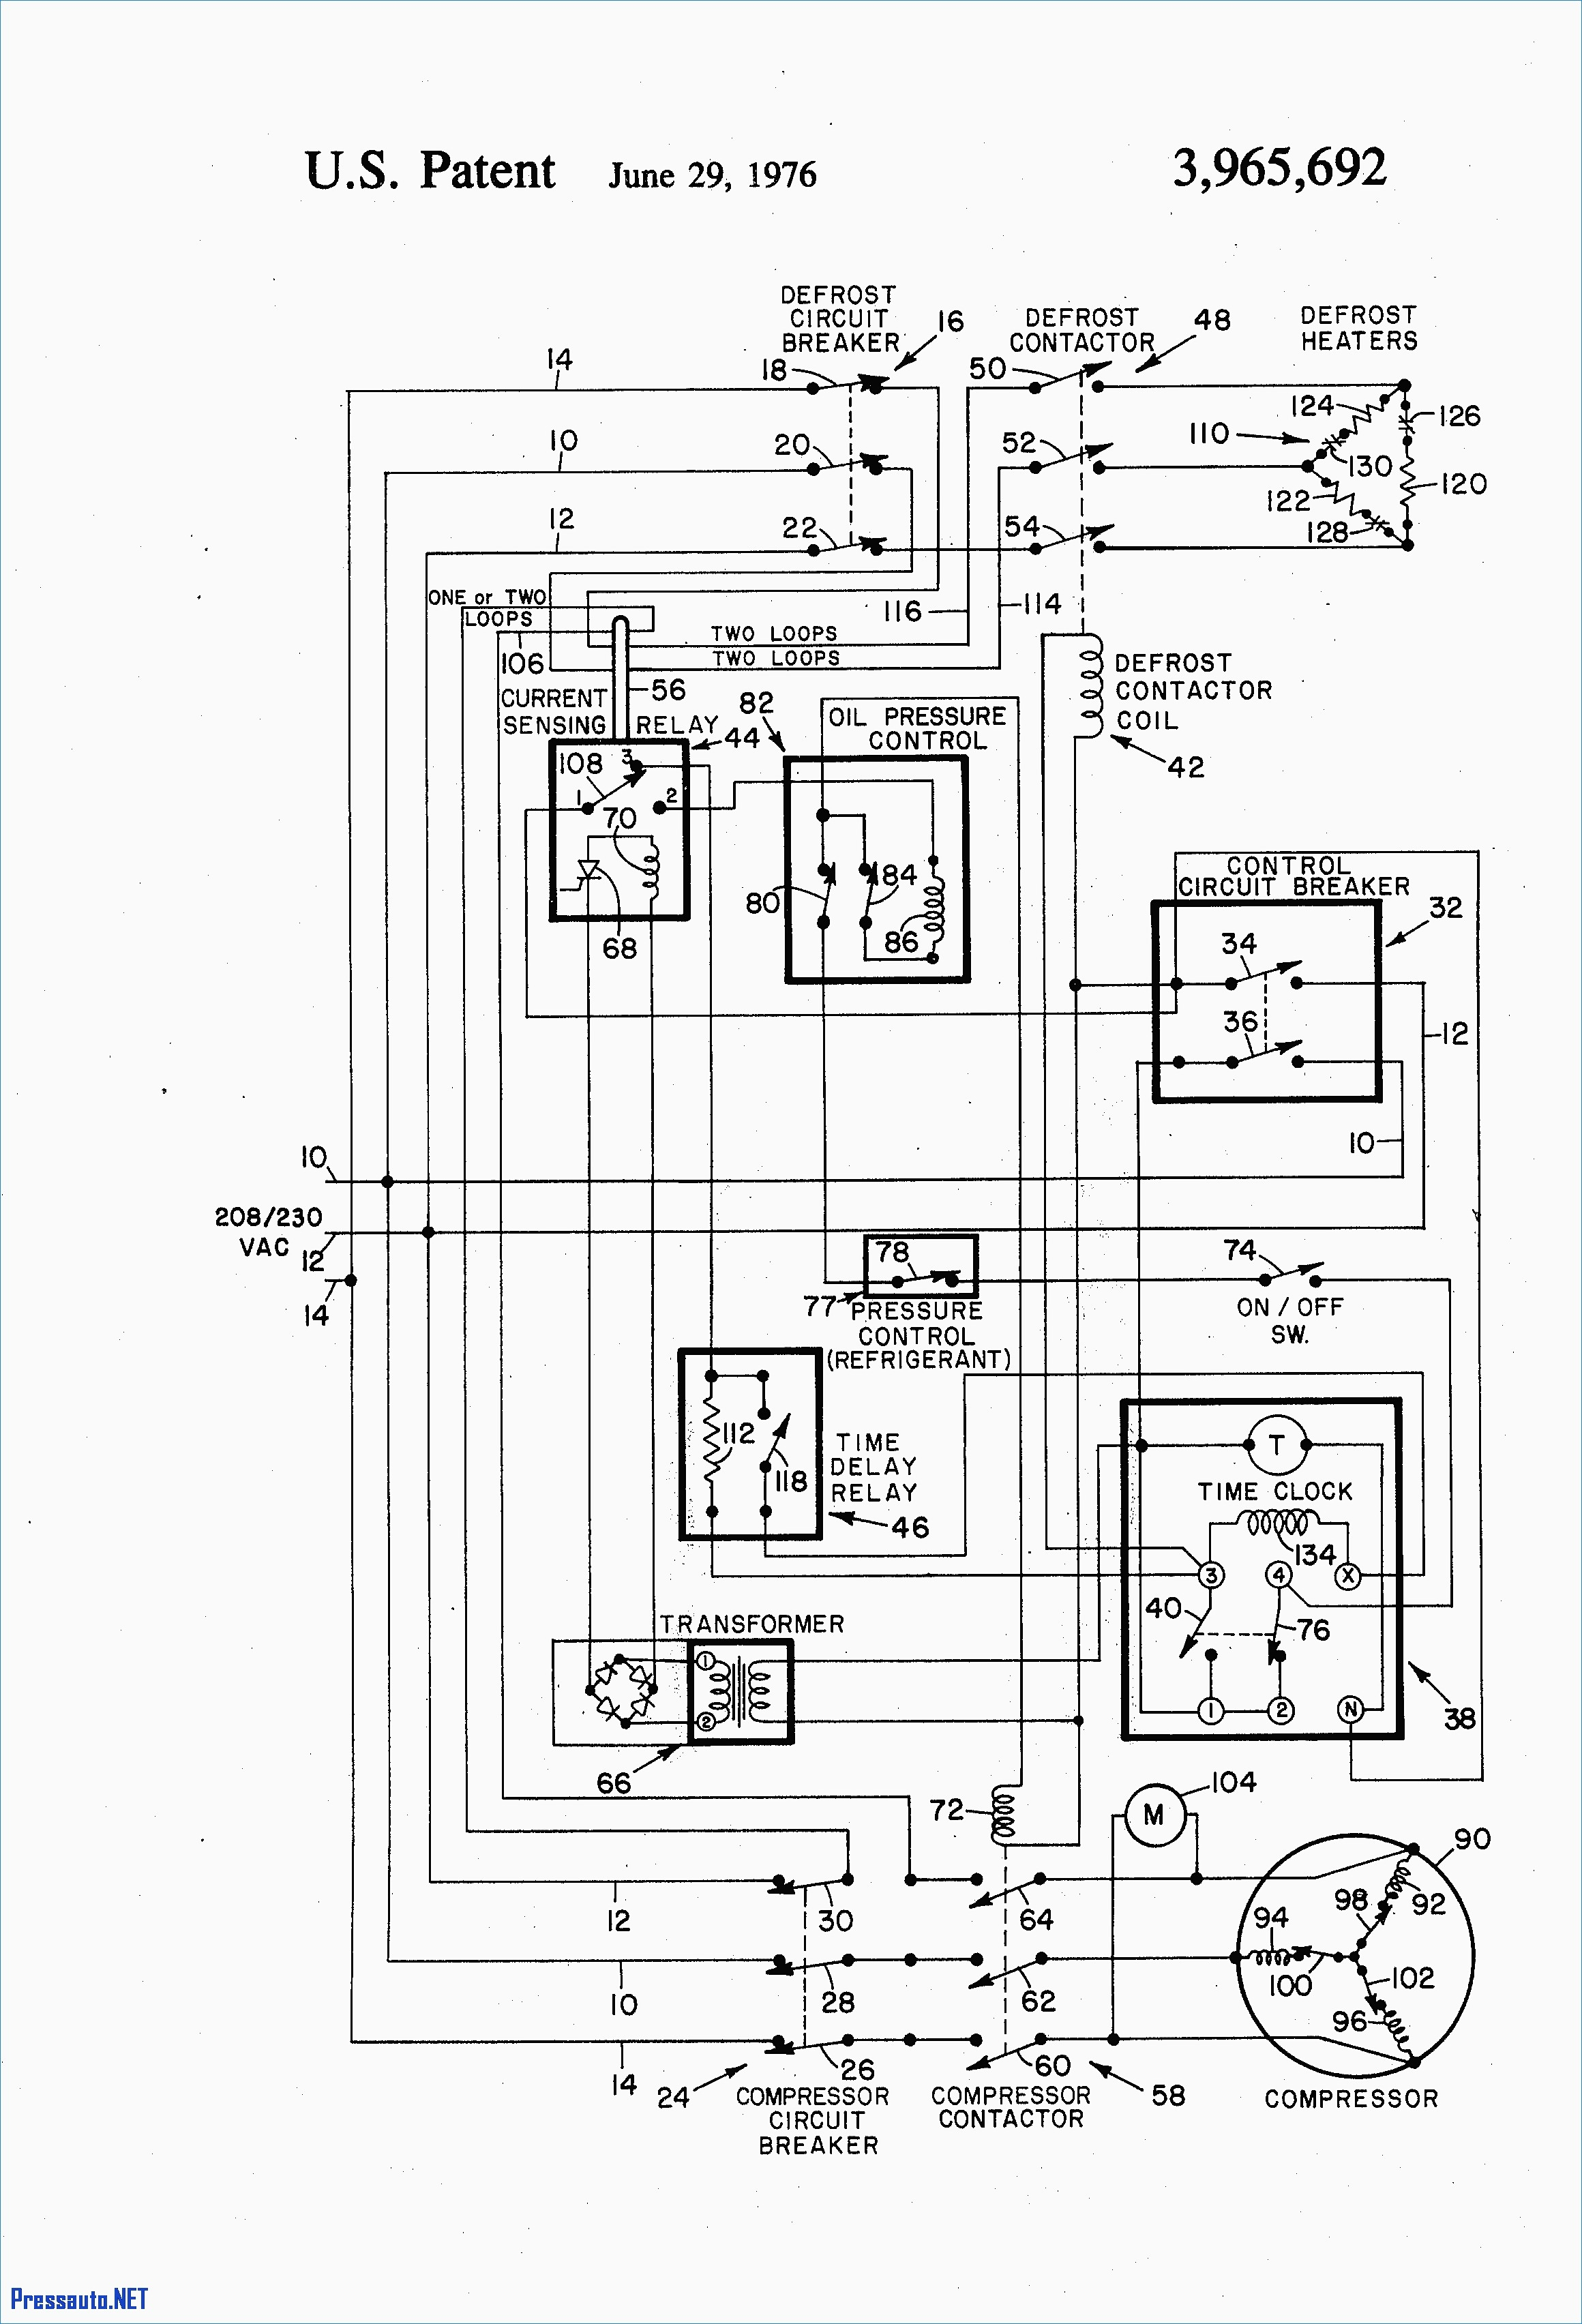 vfd panel wiring diagram Collection-lenze inverter wiring diagram new eaton vfd wiring diagram wiring rh sandaoil co VFD Bypass Schematic 16-e